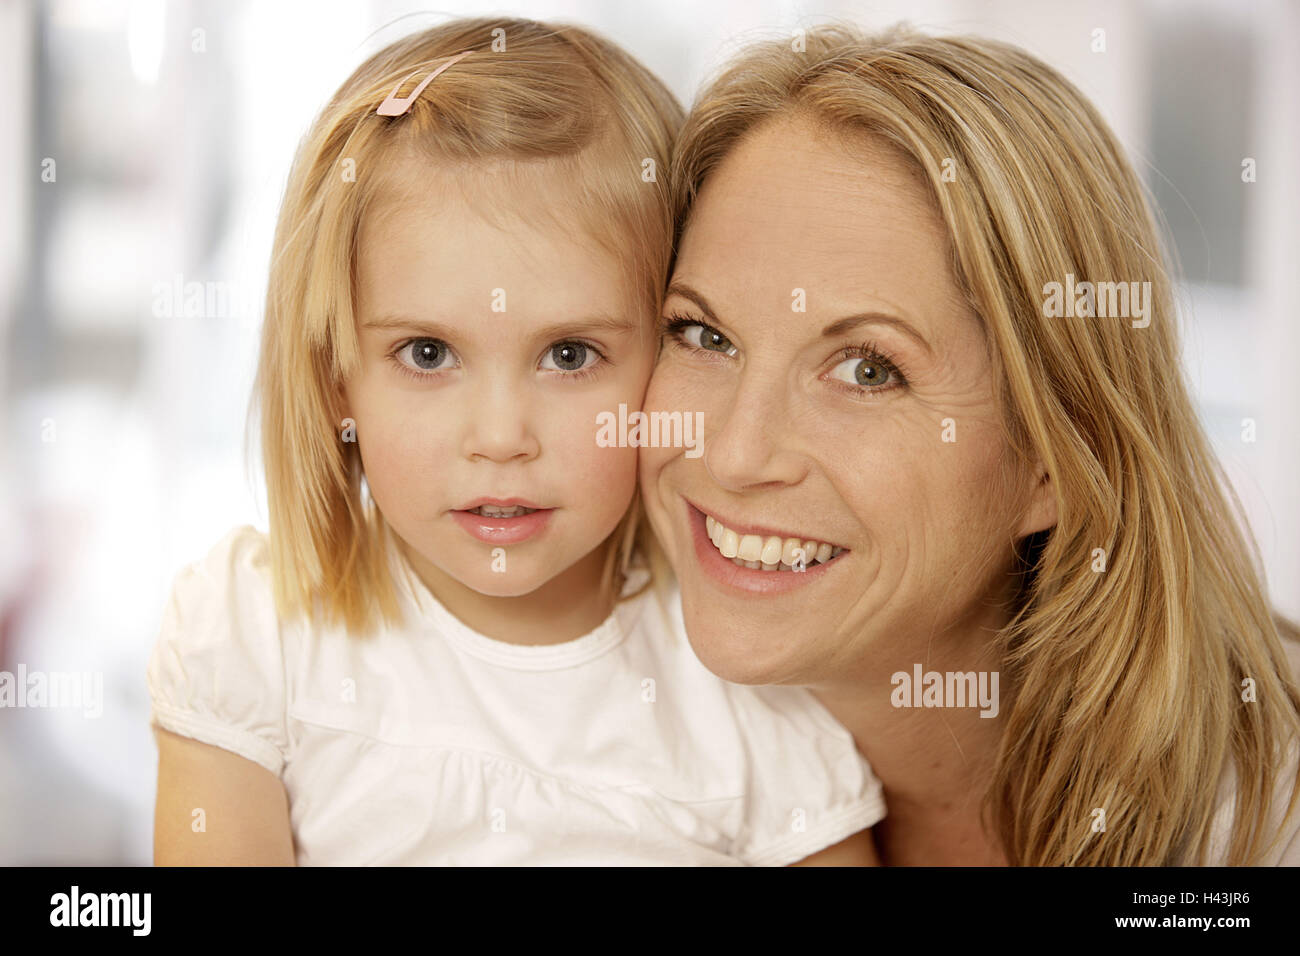 Nut, subsidiary, view camera, smile, happy, portrait, model released, people, woman, child, girl, blond, suture, - Stock Image